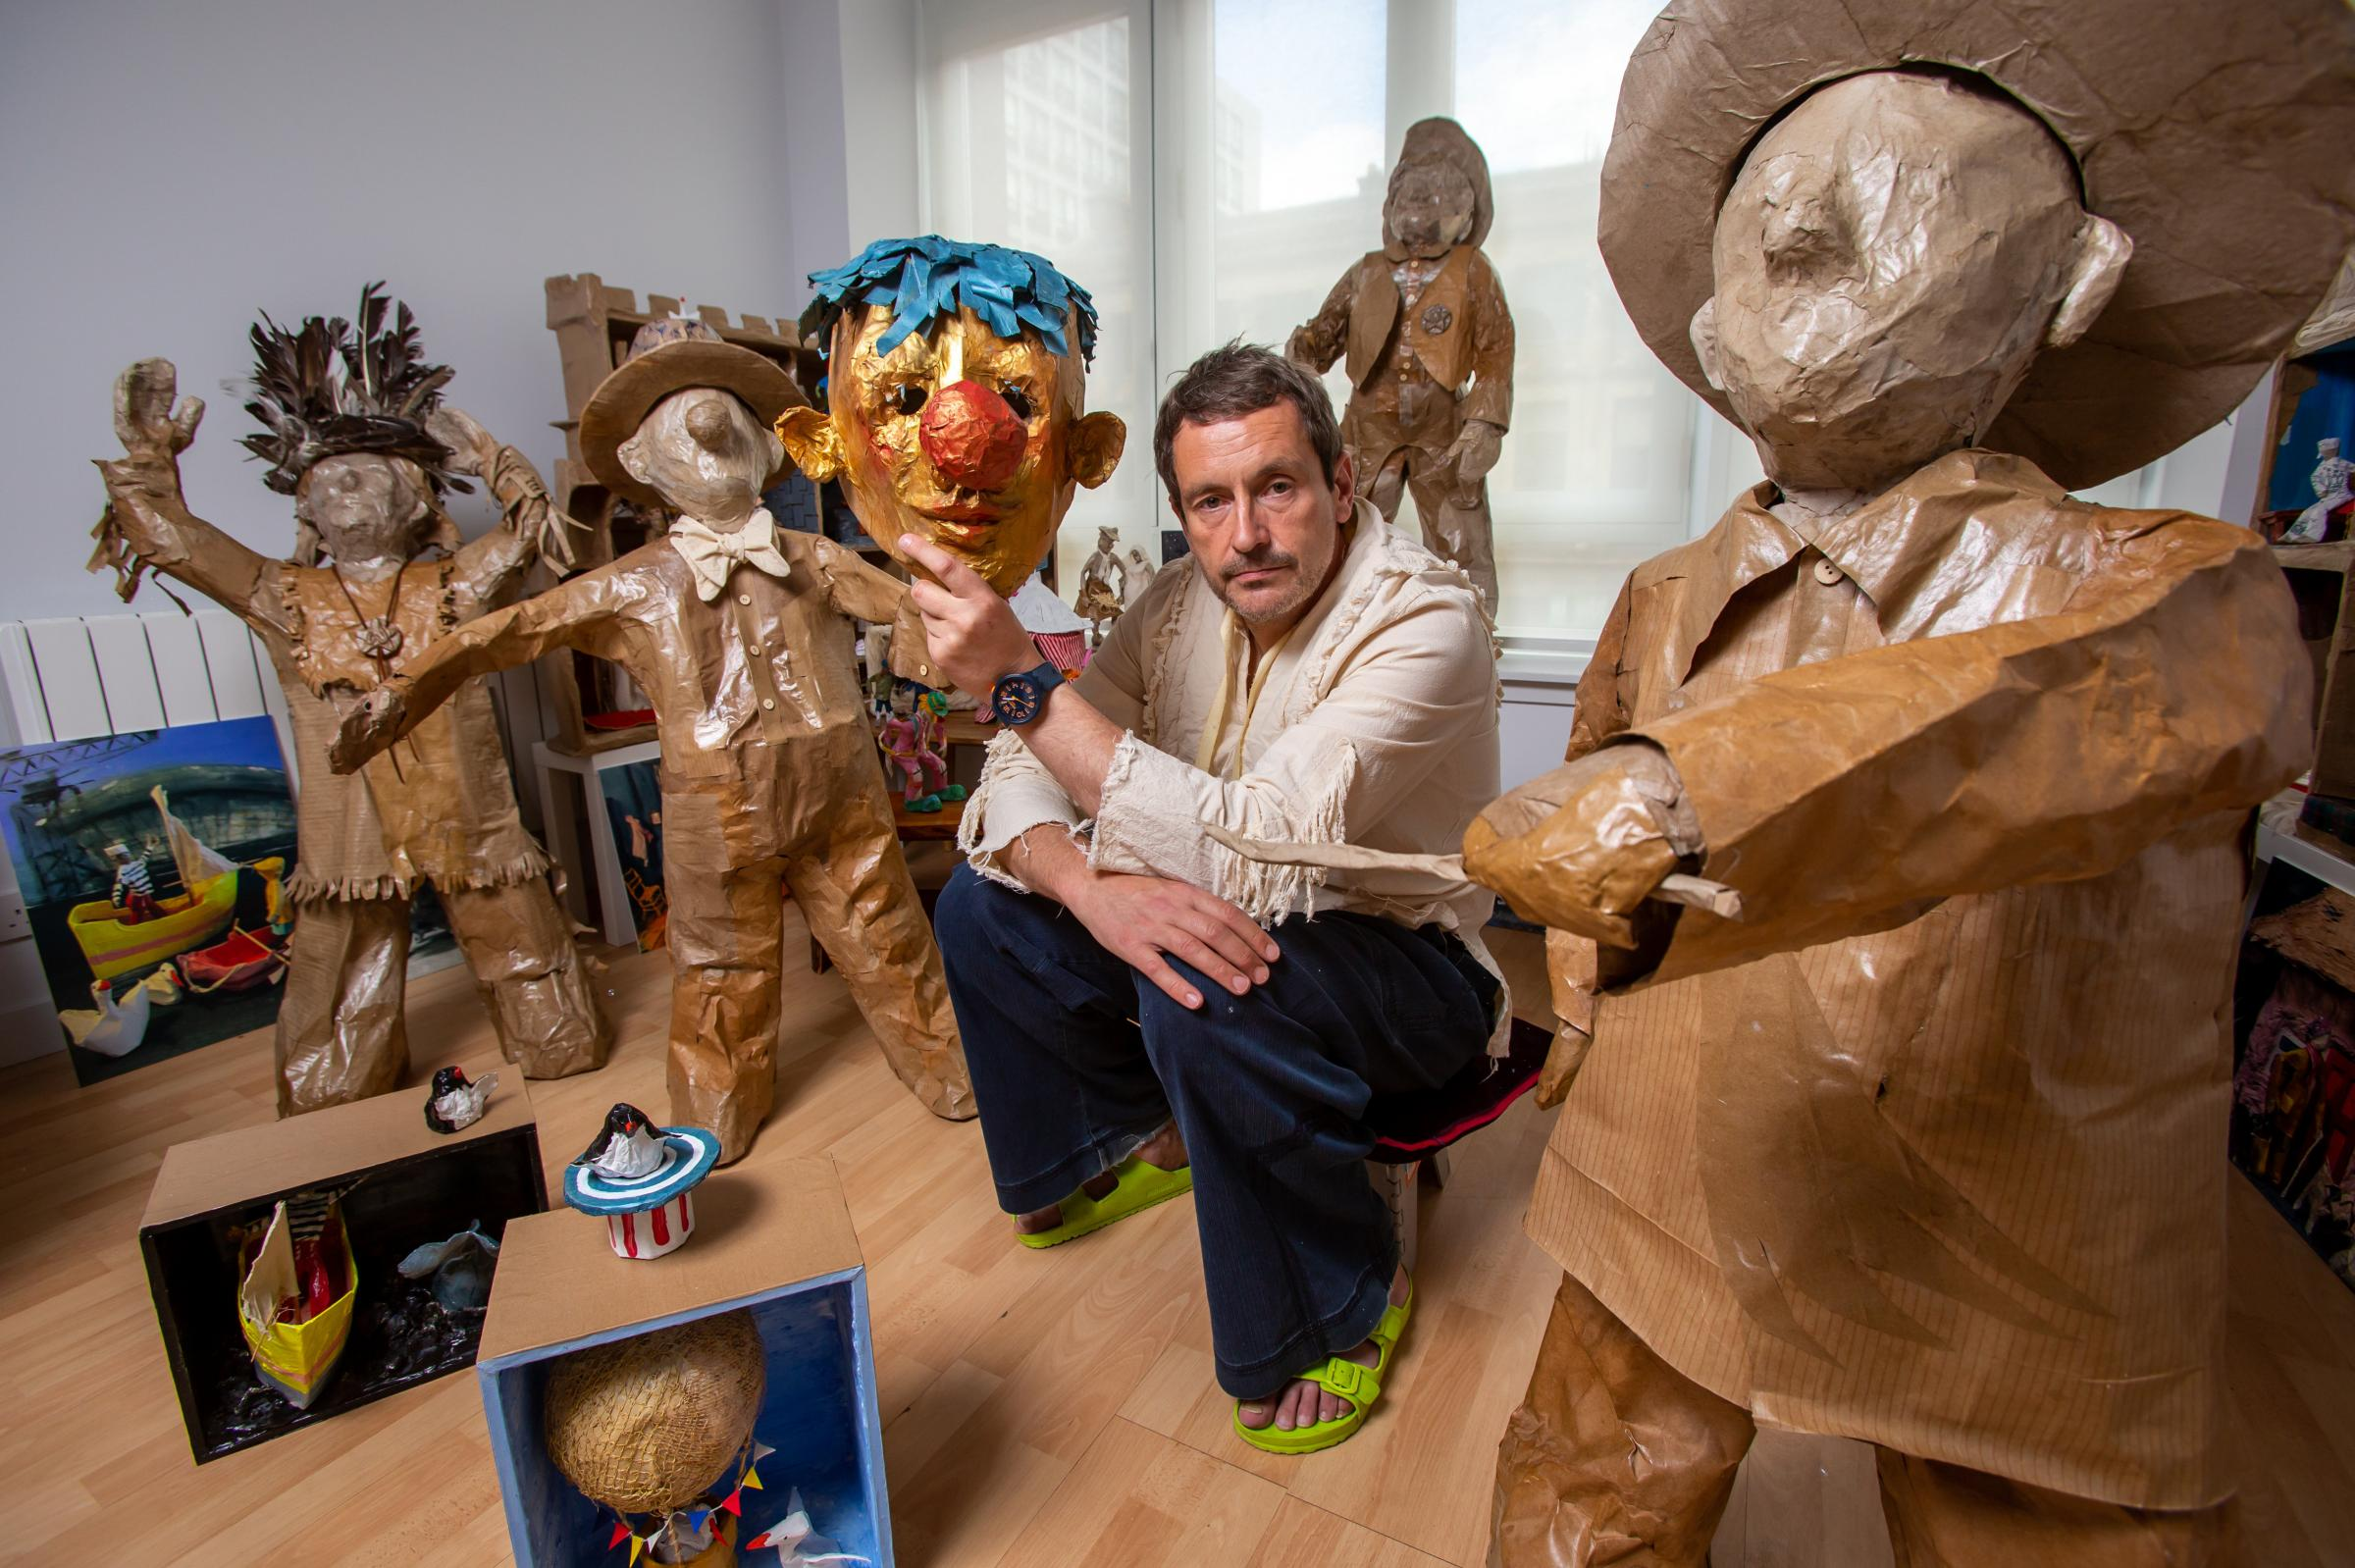 Glasgow artist Willie Sutherland says rehab led to solo show